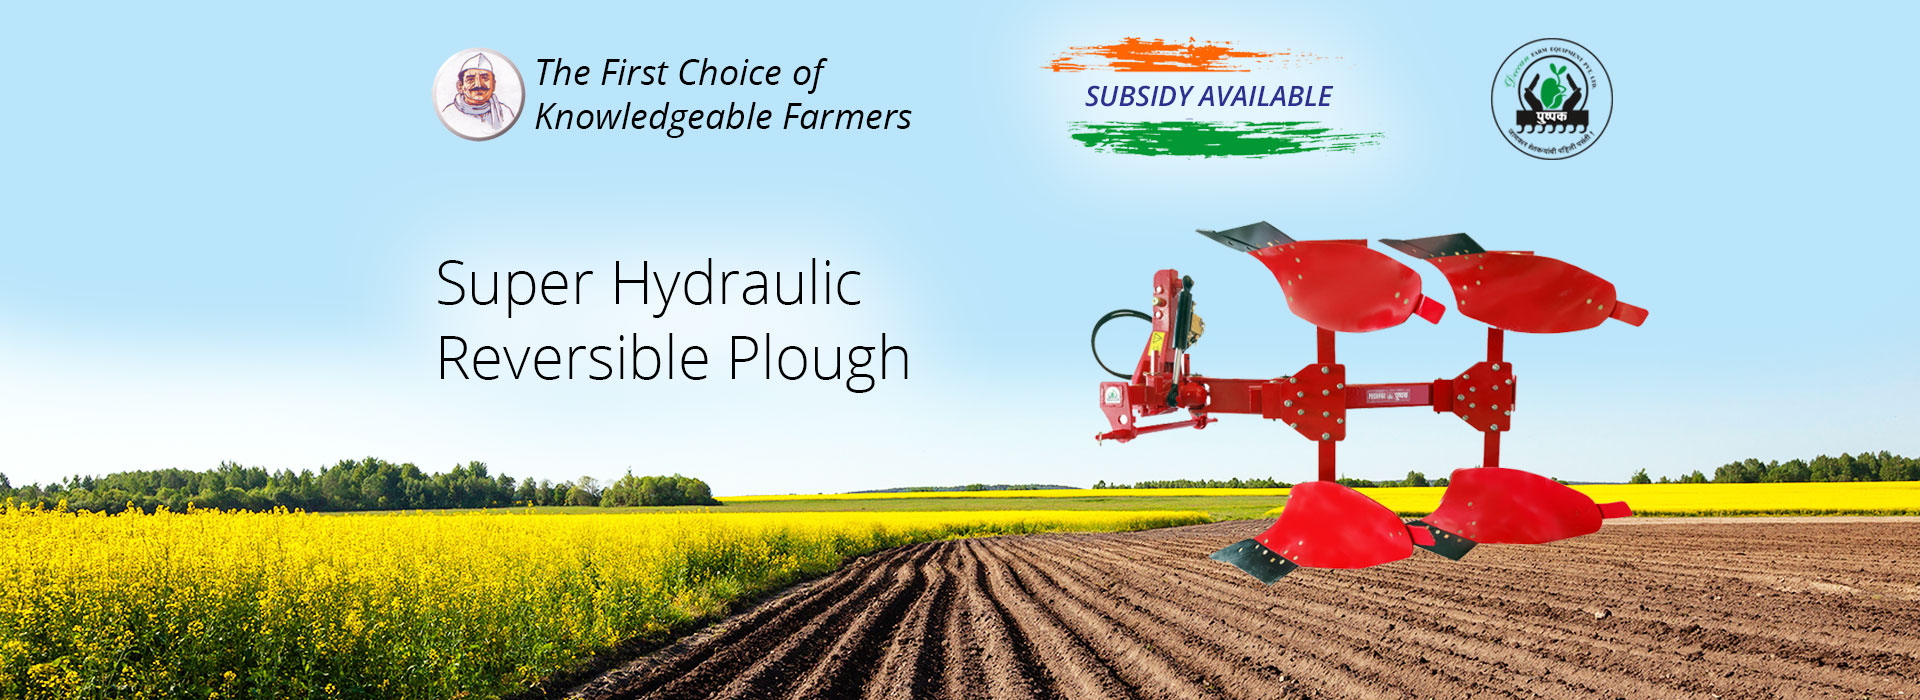 Hydraulic Reversible Plough Manufacturers India| Hydraulic Palti Nangar Manufacturer India| Reversible Plough Manufacturers India| Reversible Plough Suppliers India|Hydraulic Reversible Hal India